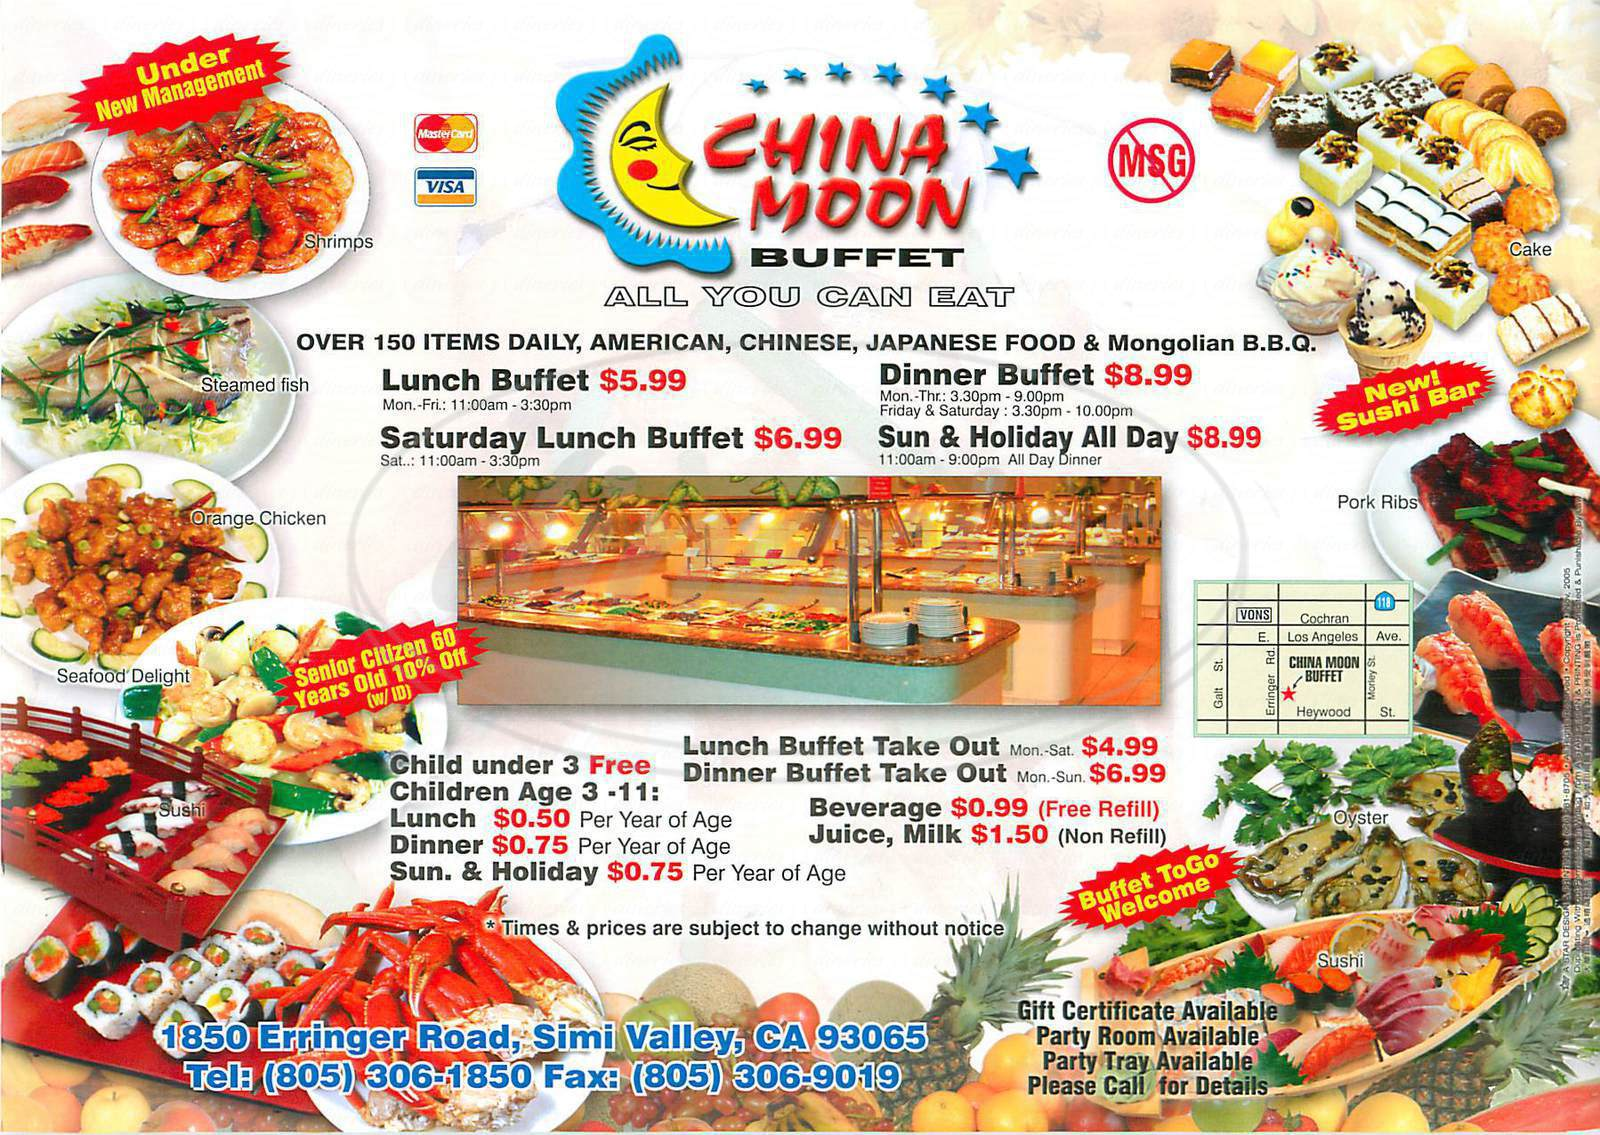 menu for China Moon Buffet